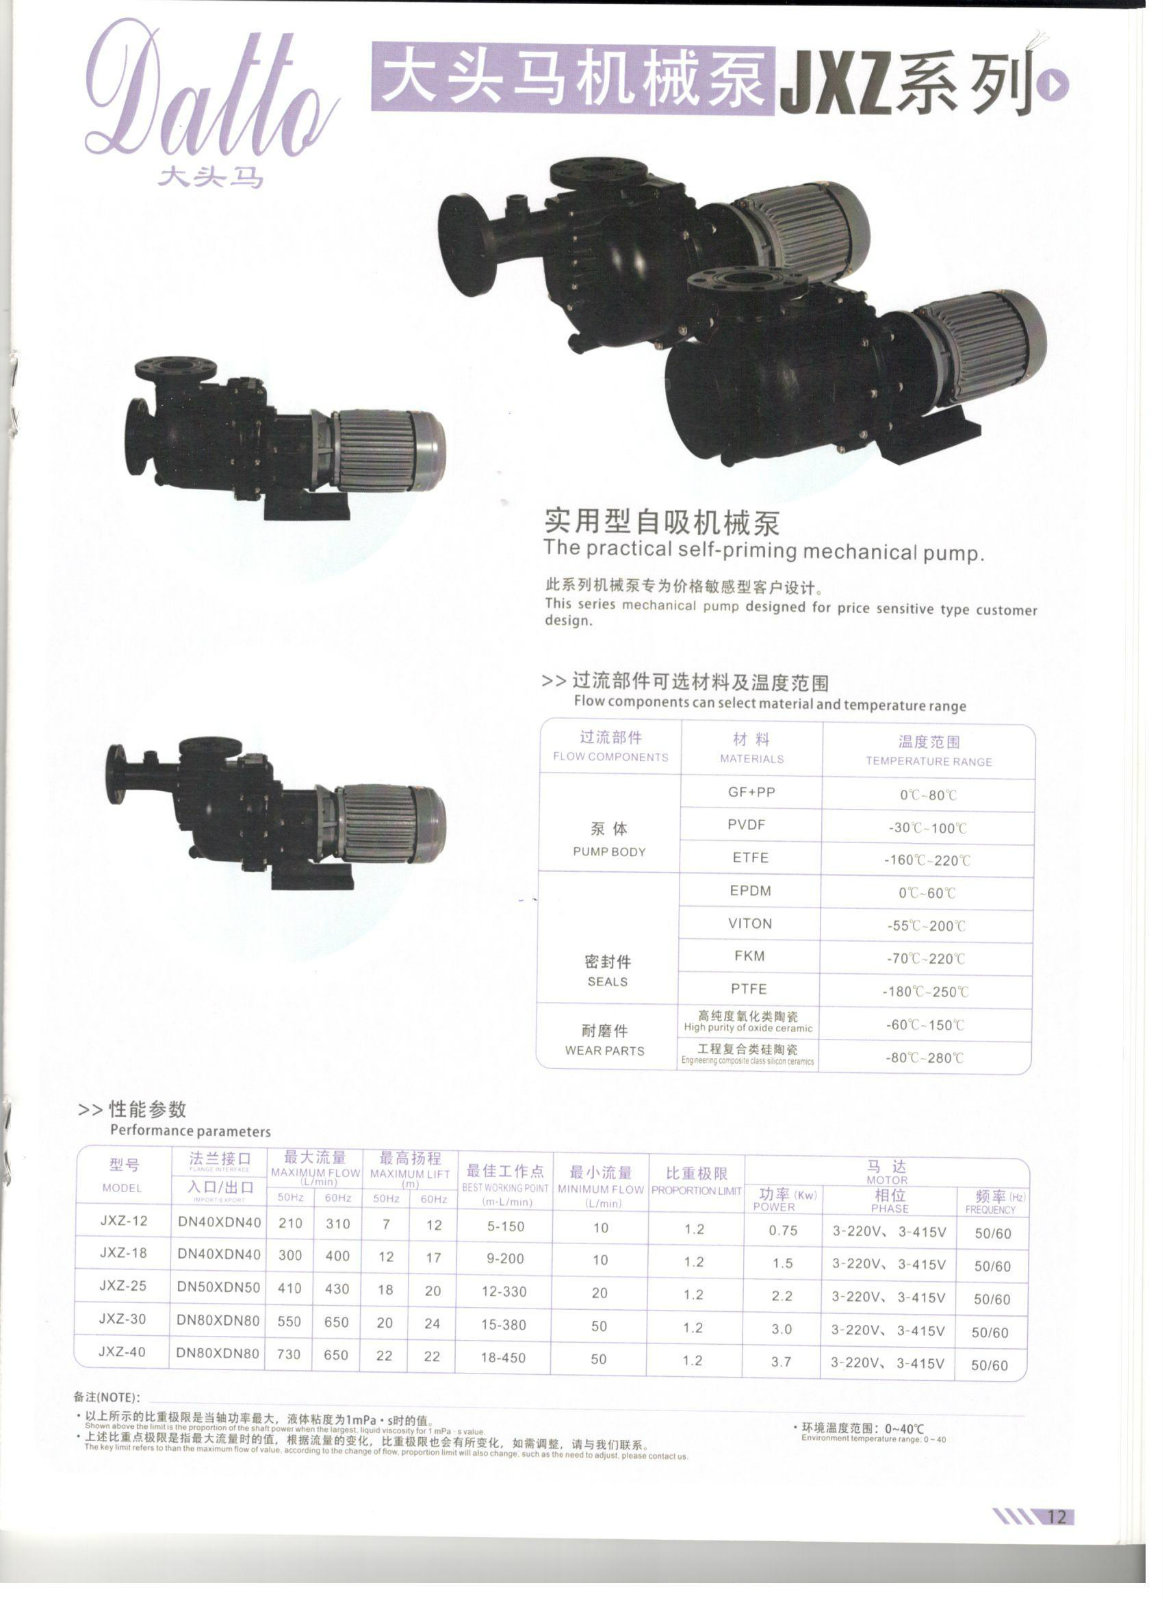 Datto Chemical Pump JXZ Series